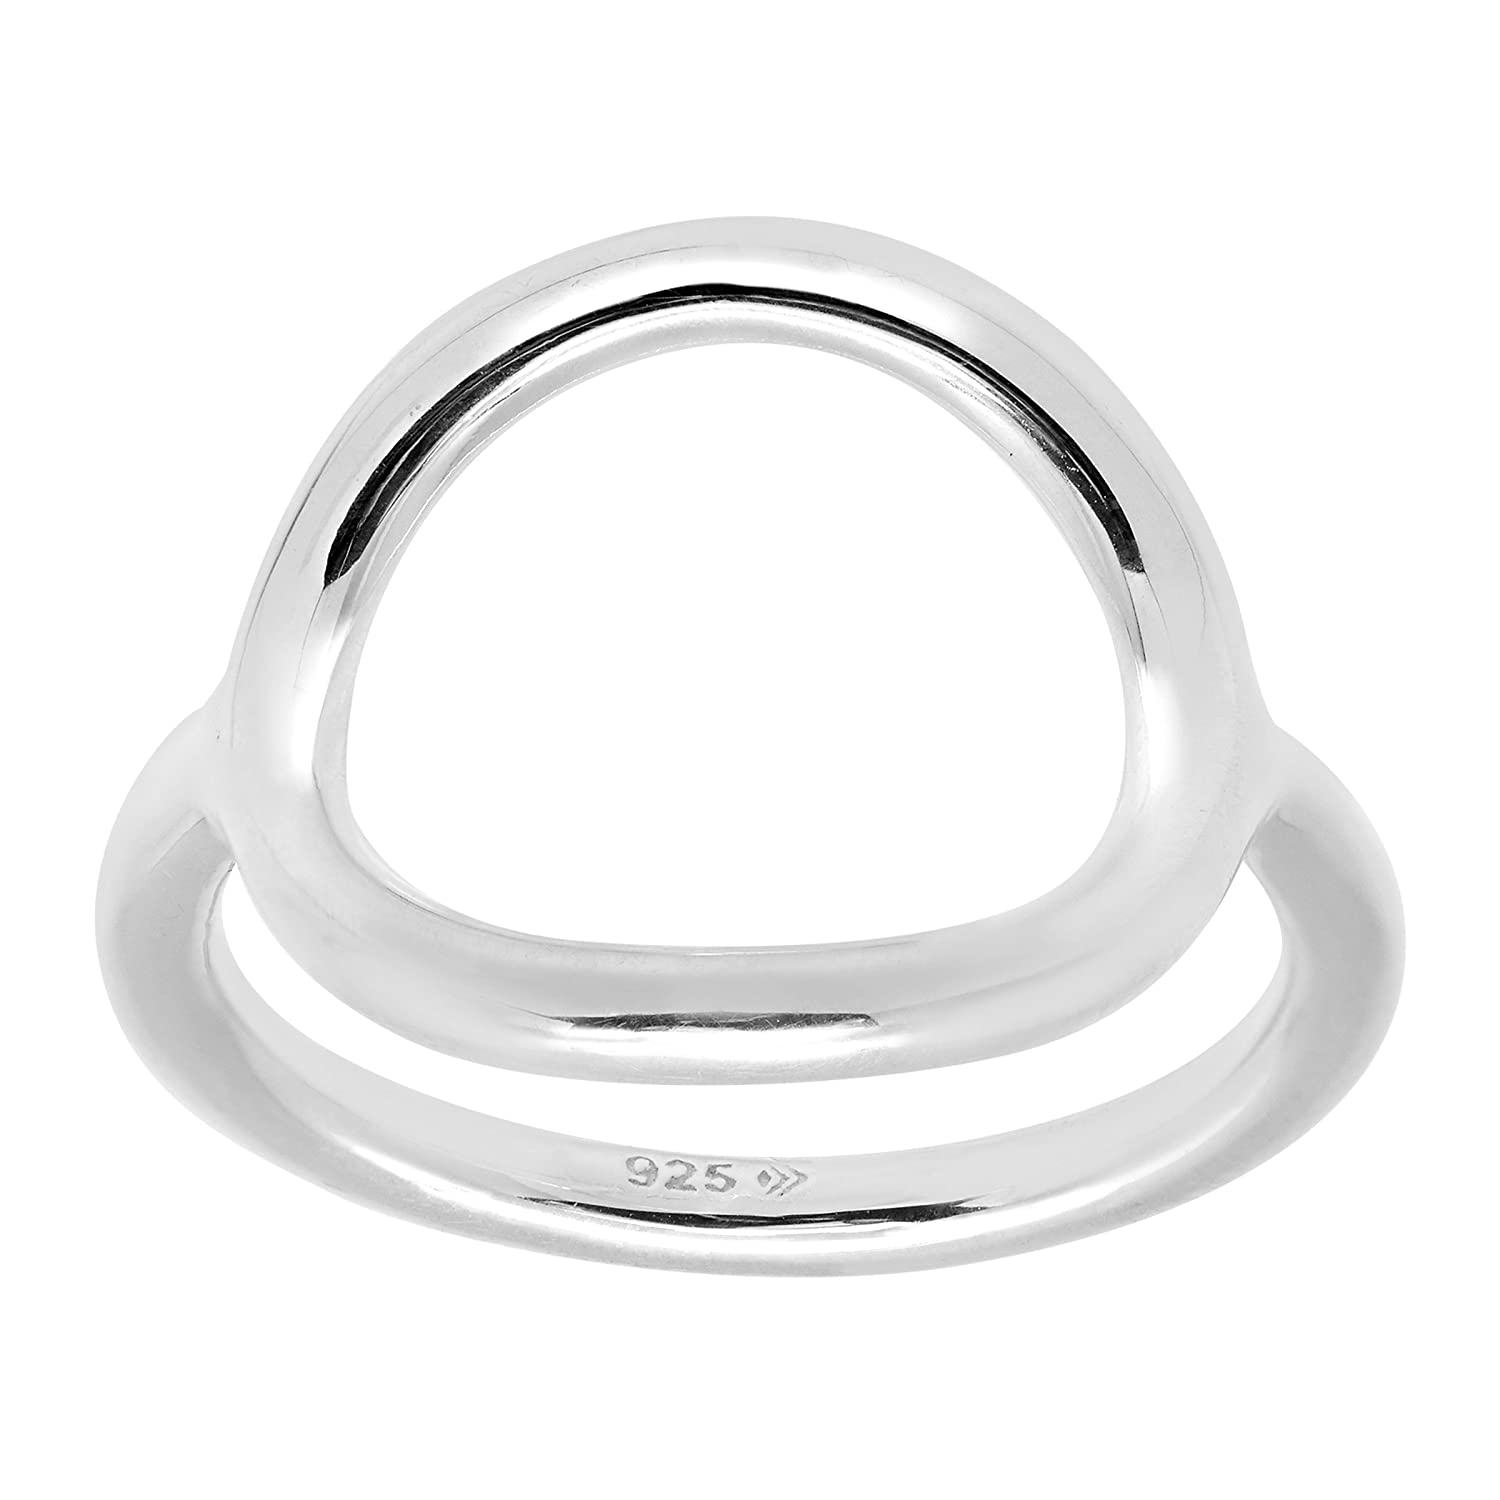 Silpada 'Karma' Open Circle Ring in Sterling Silver Richline Group R2932P